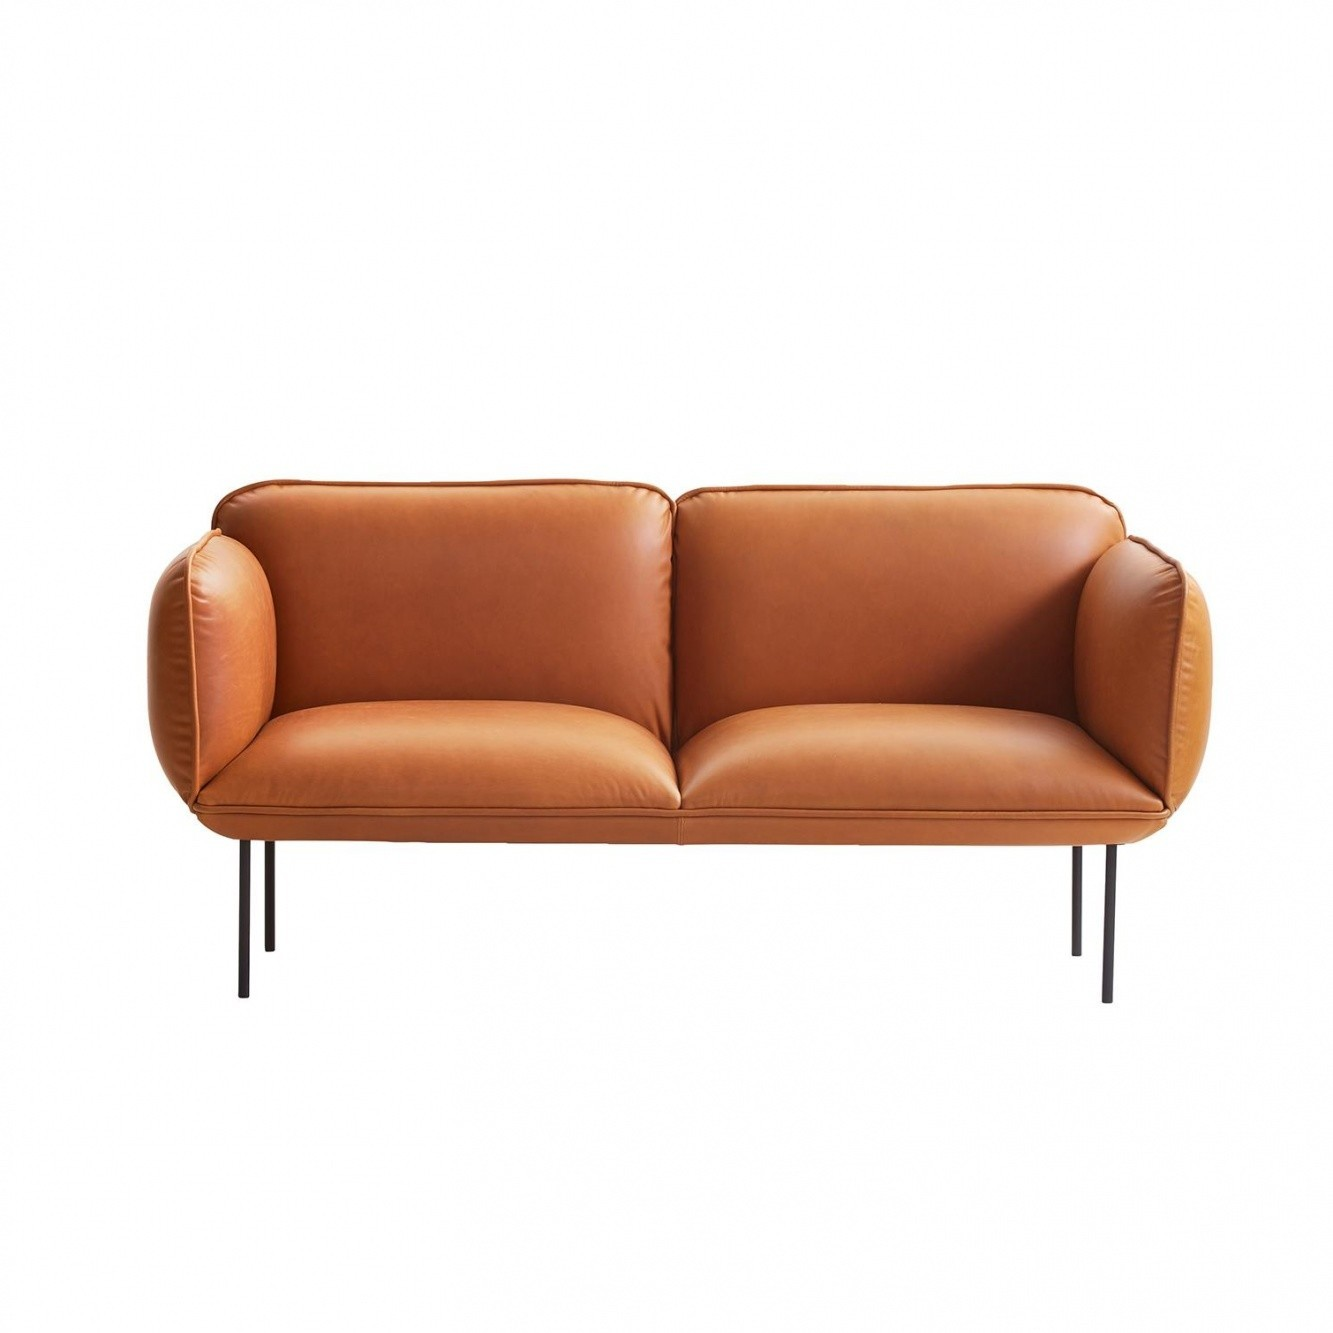 Nakki 2-Seater Leather Sofa